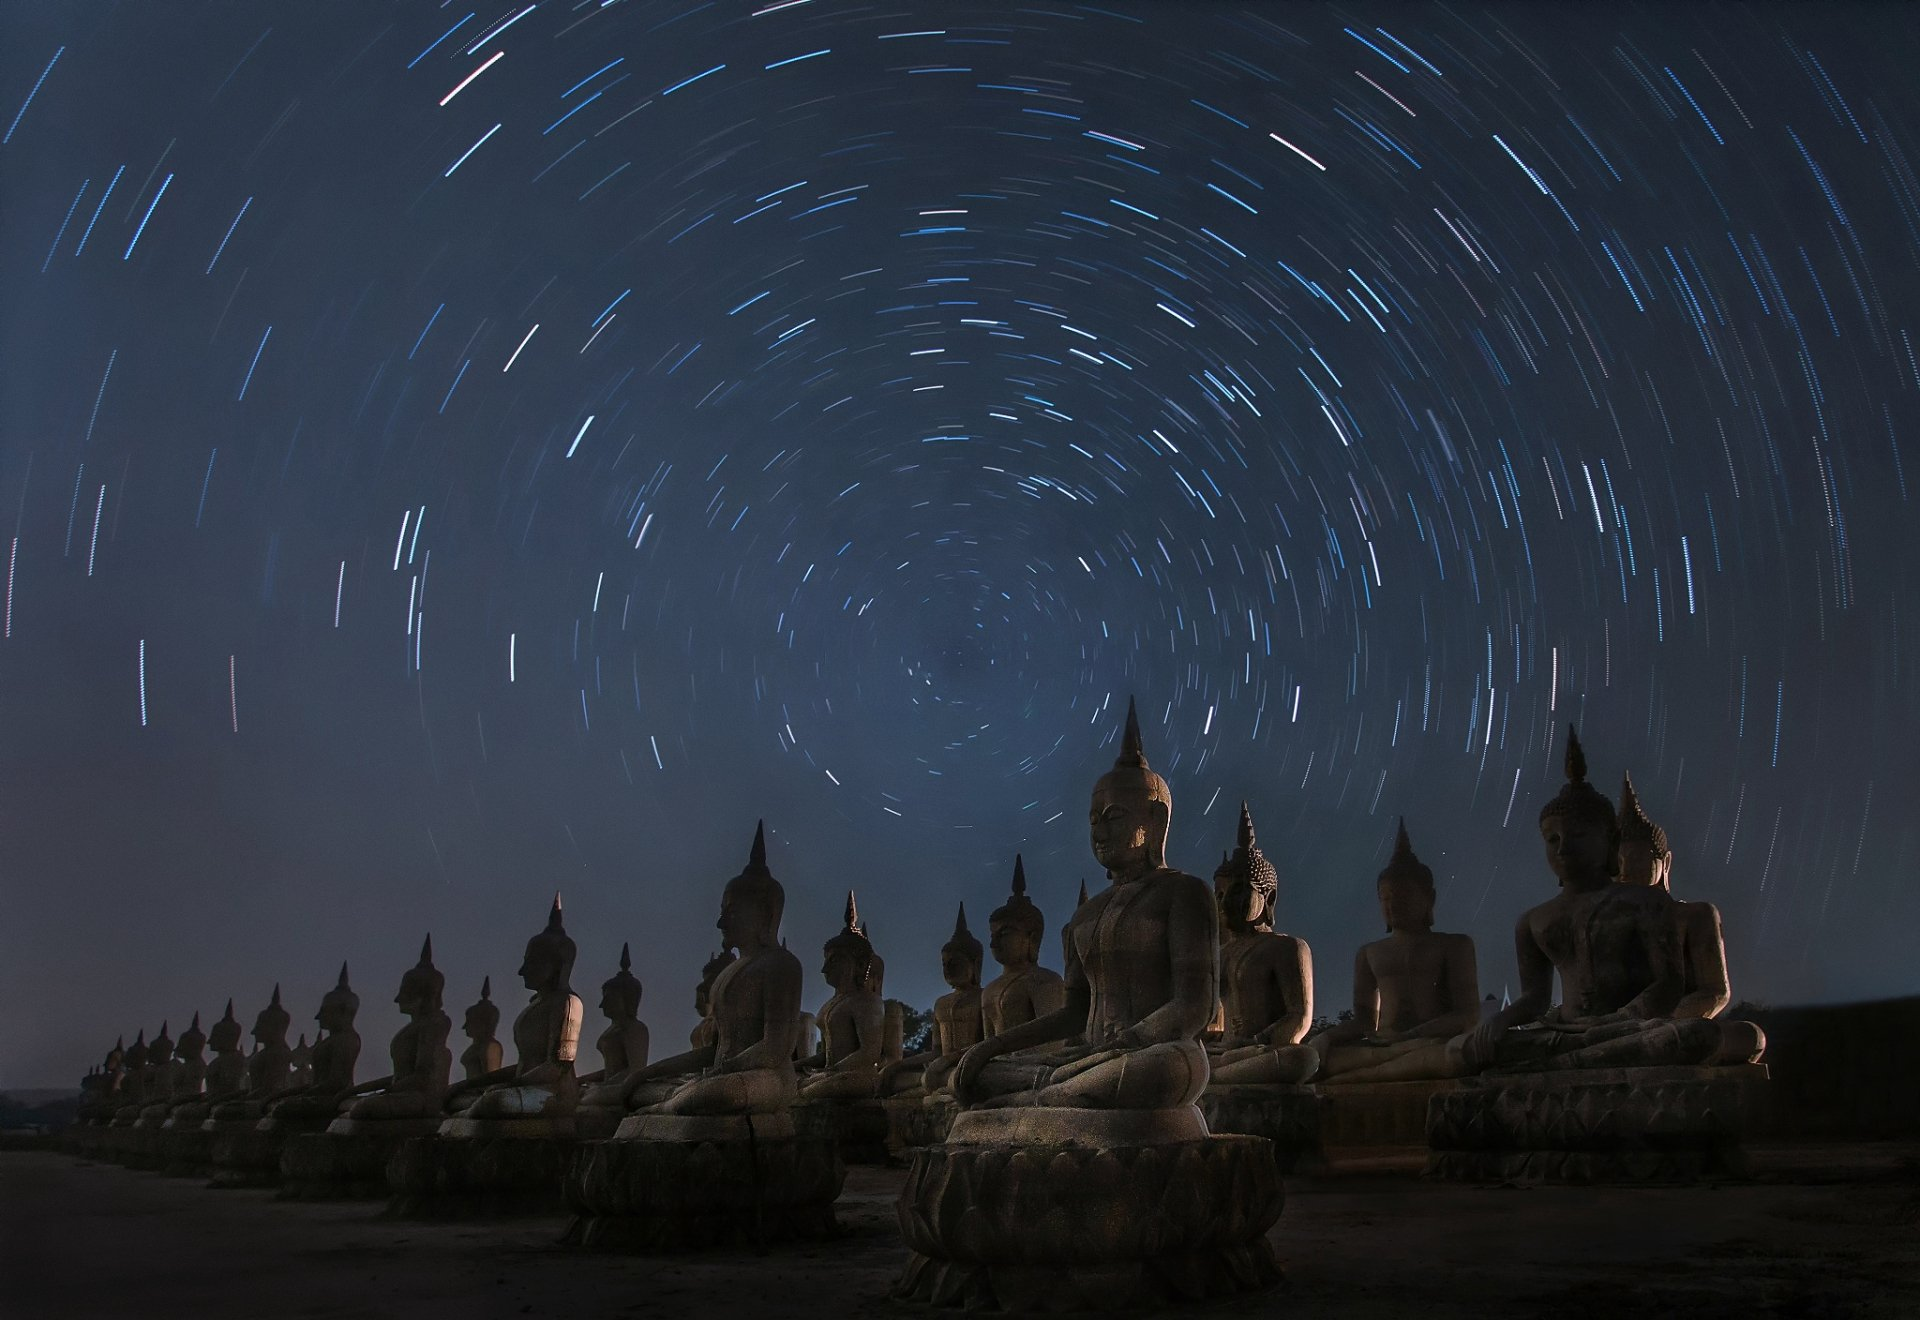 Religious - Buddha  Statue Night Starry Sky Time-Lapse Thailand Wallpaper